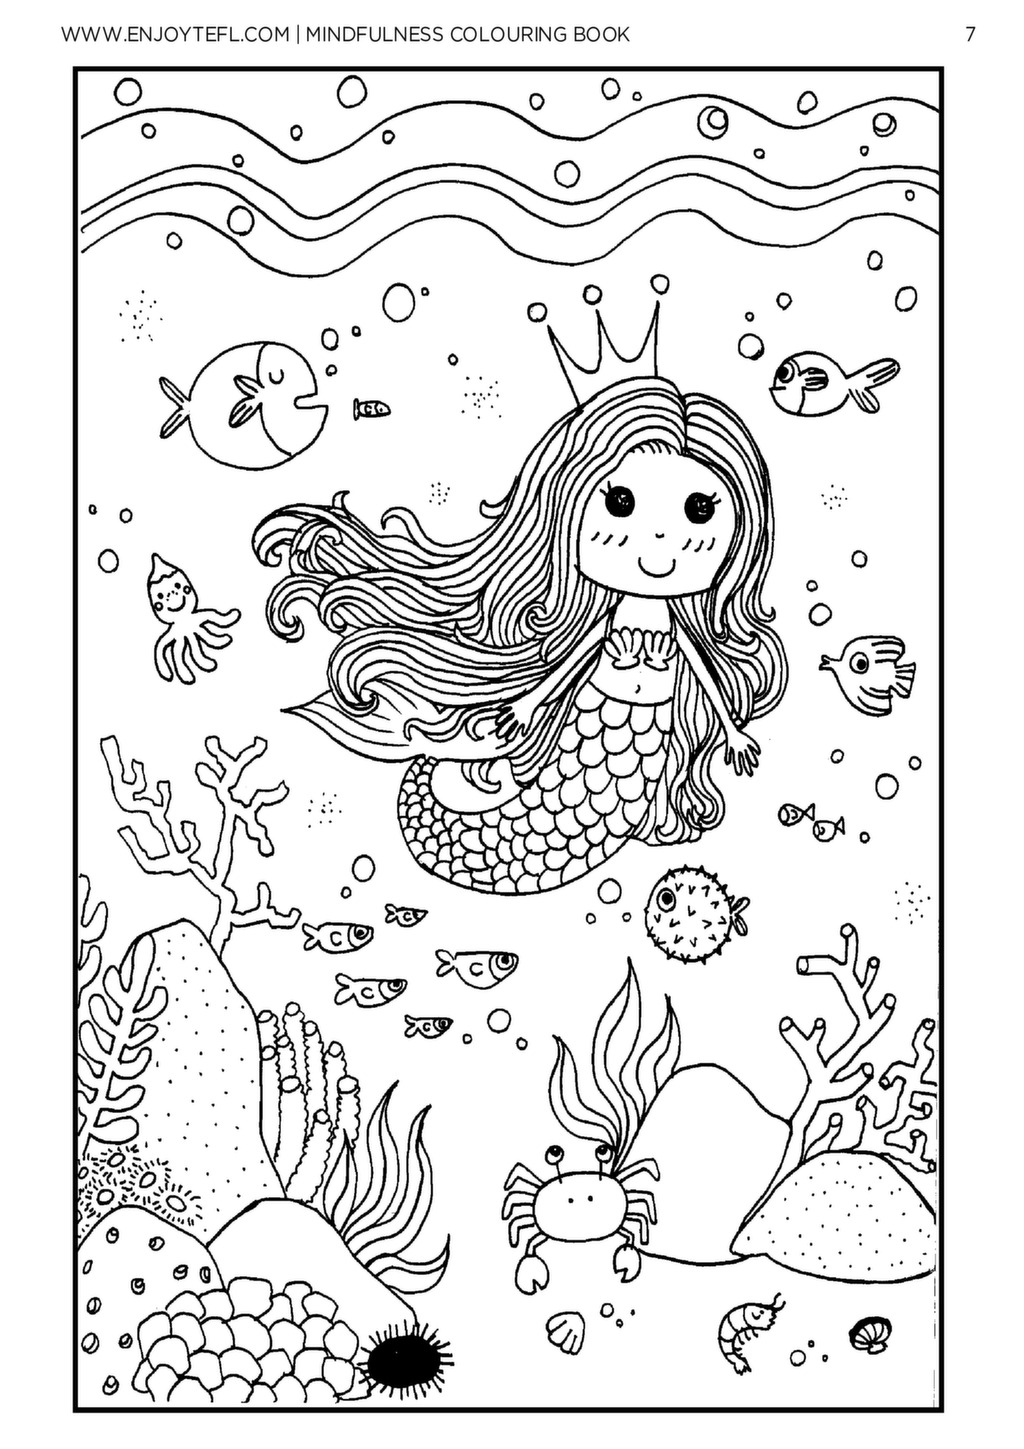 Mindfulness Coloring Pages Pdf : Mindfulness colouring book enjoy tefl